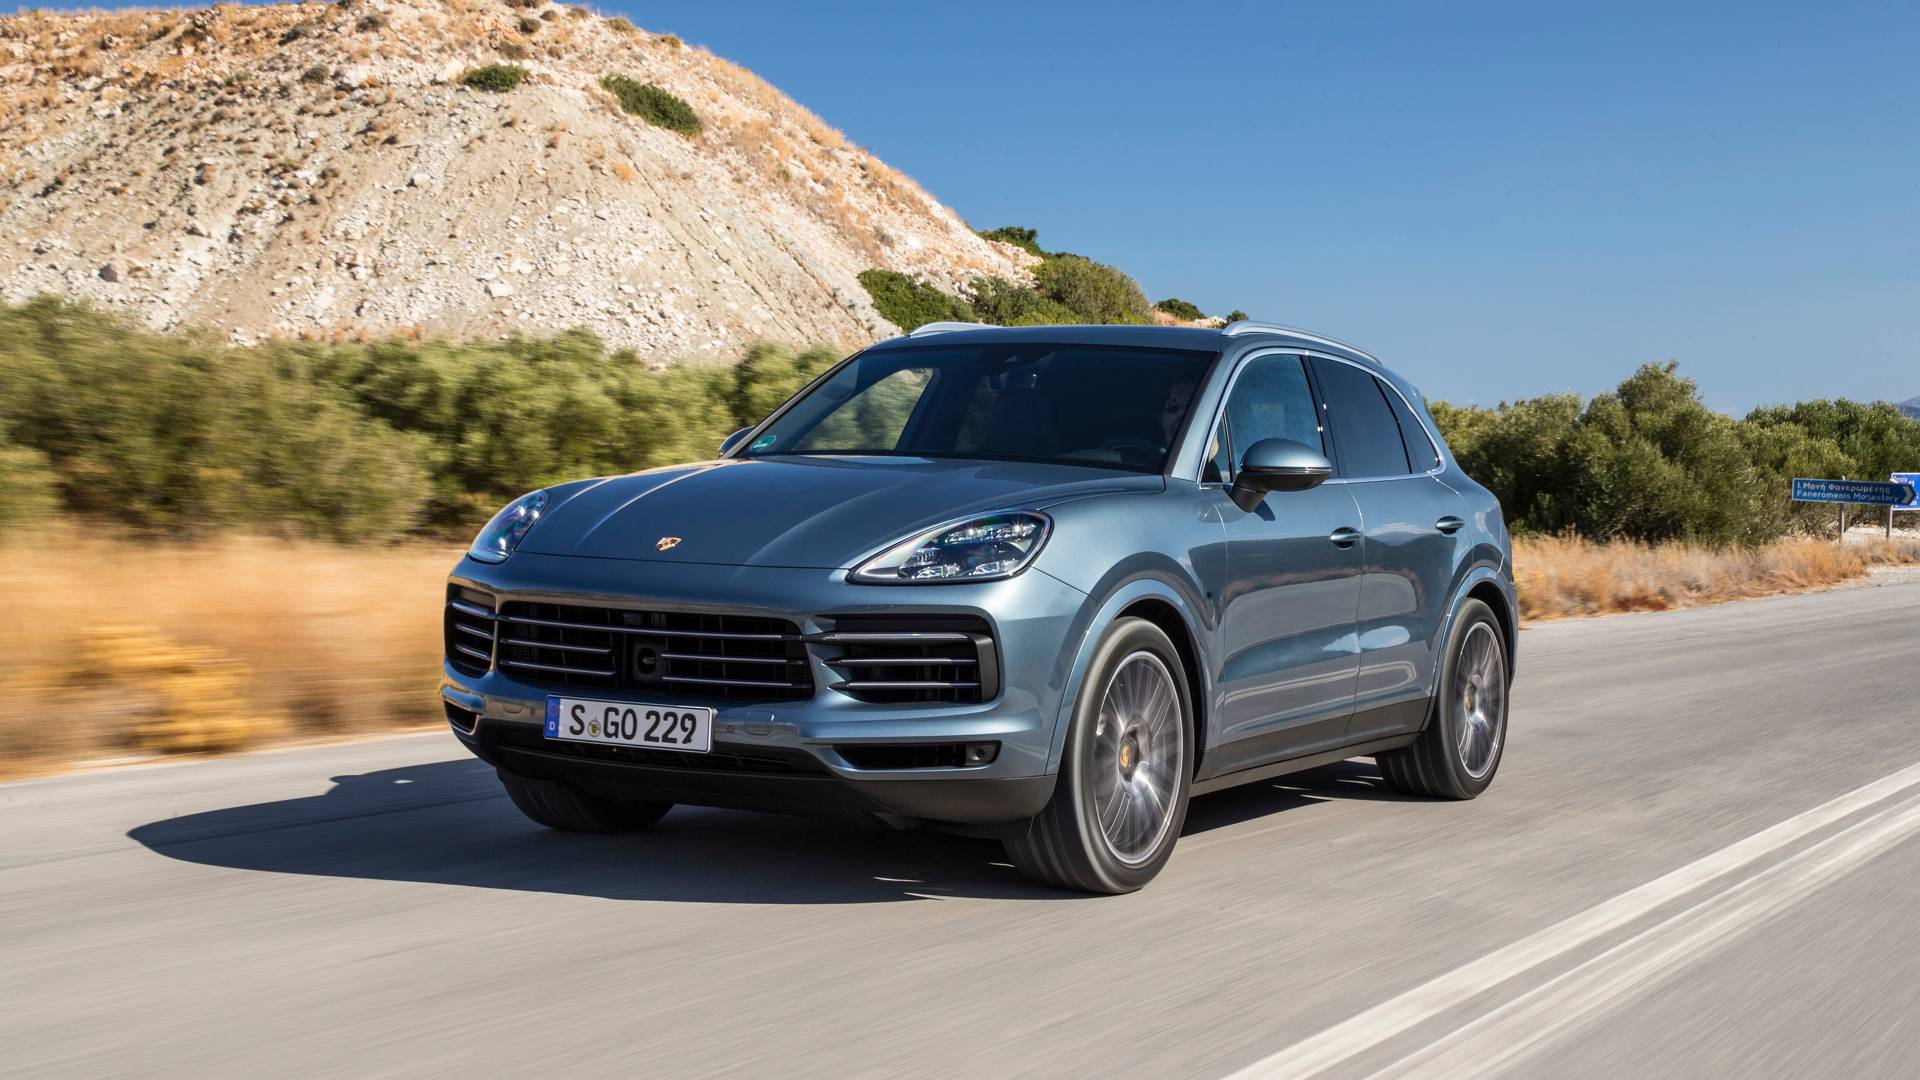 2017 Porsche Cayenne review Still the sports car of SUV world